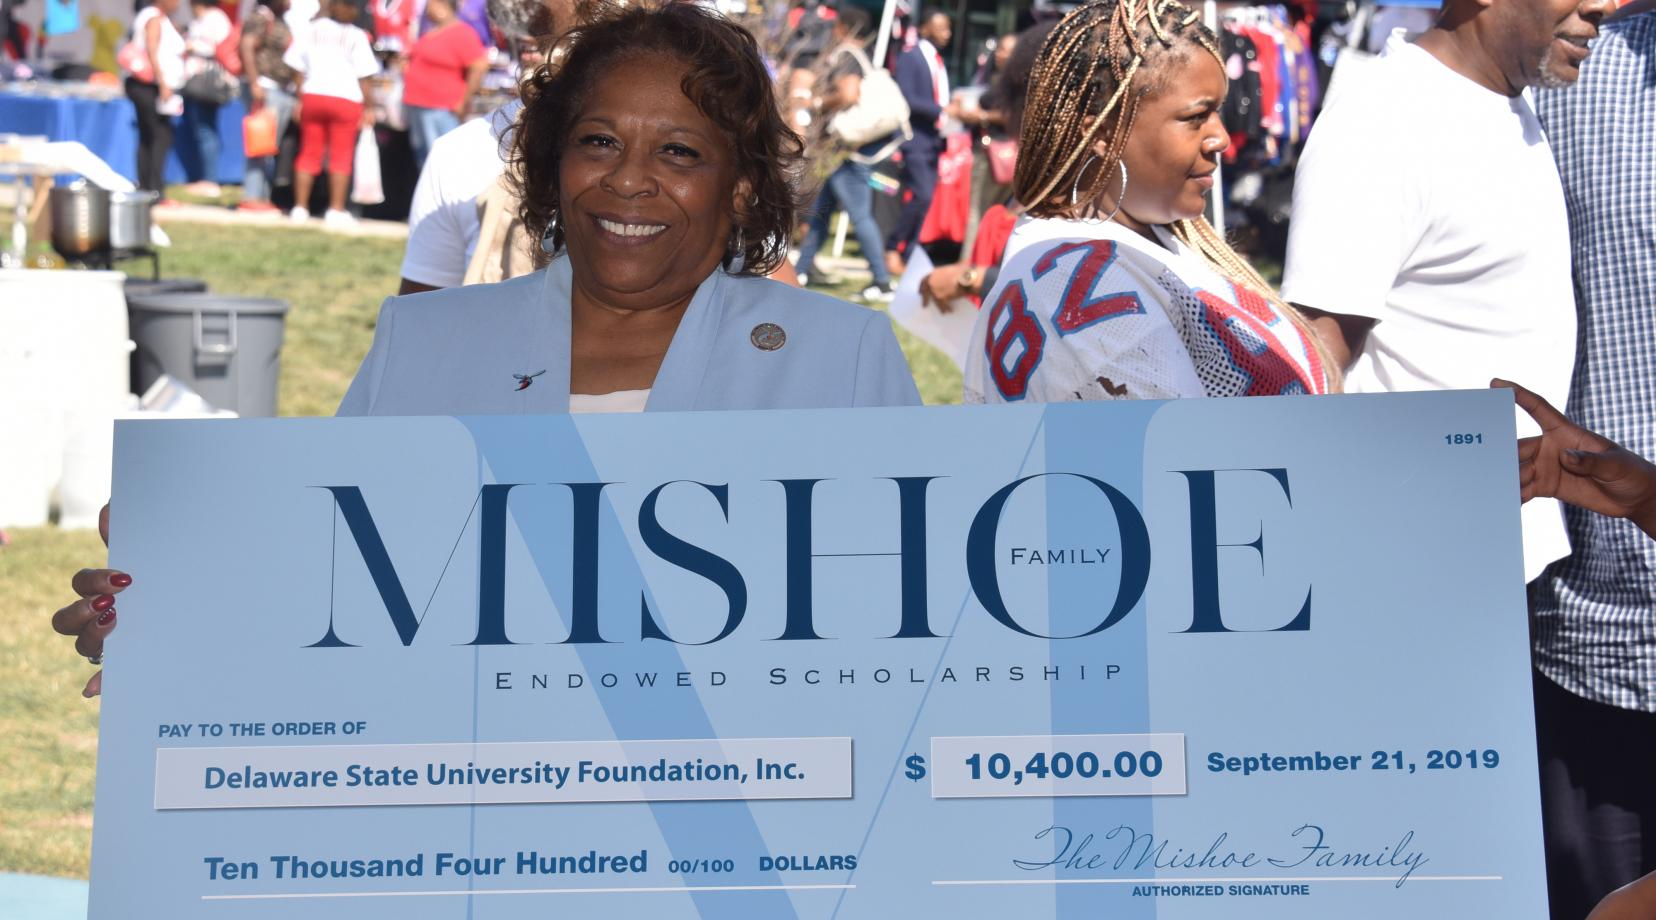 University President Wilma Mishoe holds a display check on behalf of her family that signals the establishment of the Mishoe Endowed Scholarship.